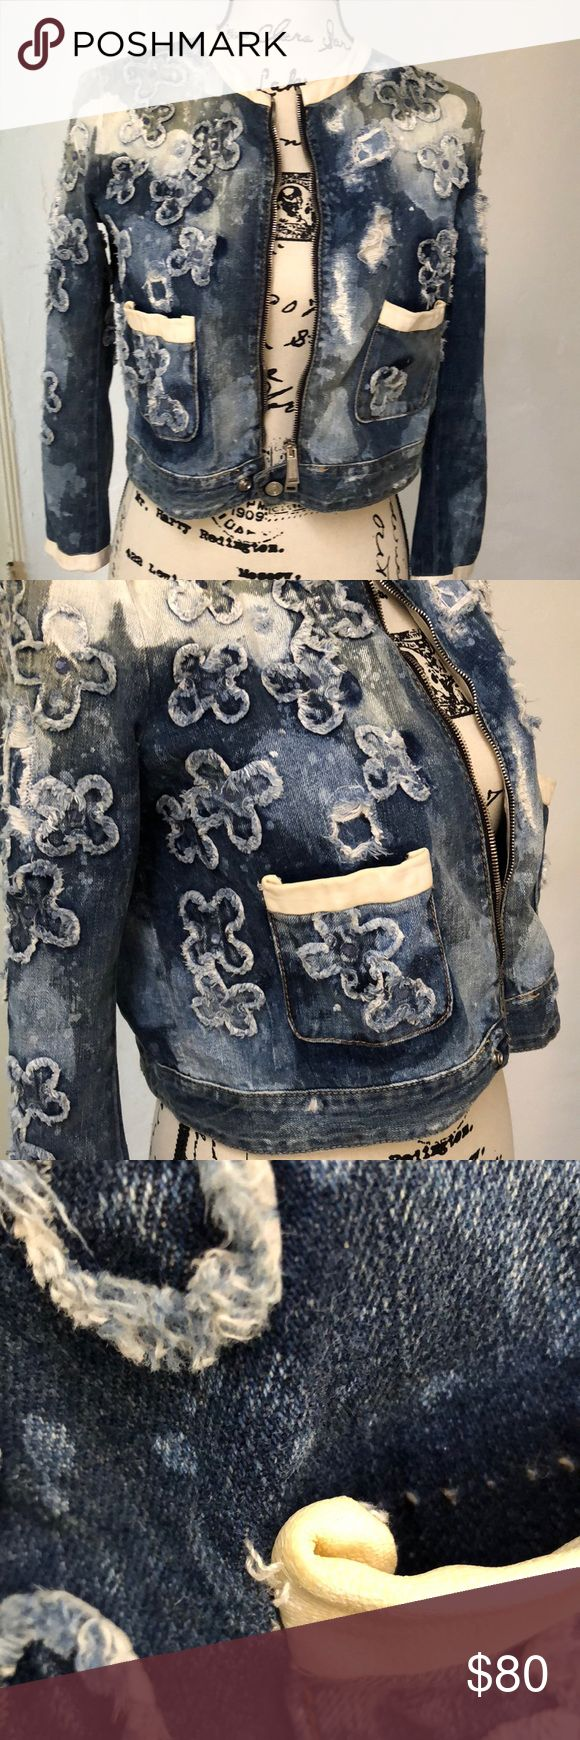 Dsquared distressed denim jacket w leather trim Distressed/destroyed denim w appliqué flowers and white leather trim. Signs of wear: Slight fading of white leather on interior of collar and cuffs. Also one pocket slightly loose. Inner has some marks from self tanner. All of these are pictured here and price reflects this. Made in Italy. DSQUARED Jackets & Coats Jean Jackets